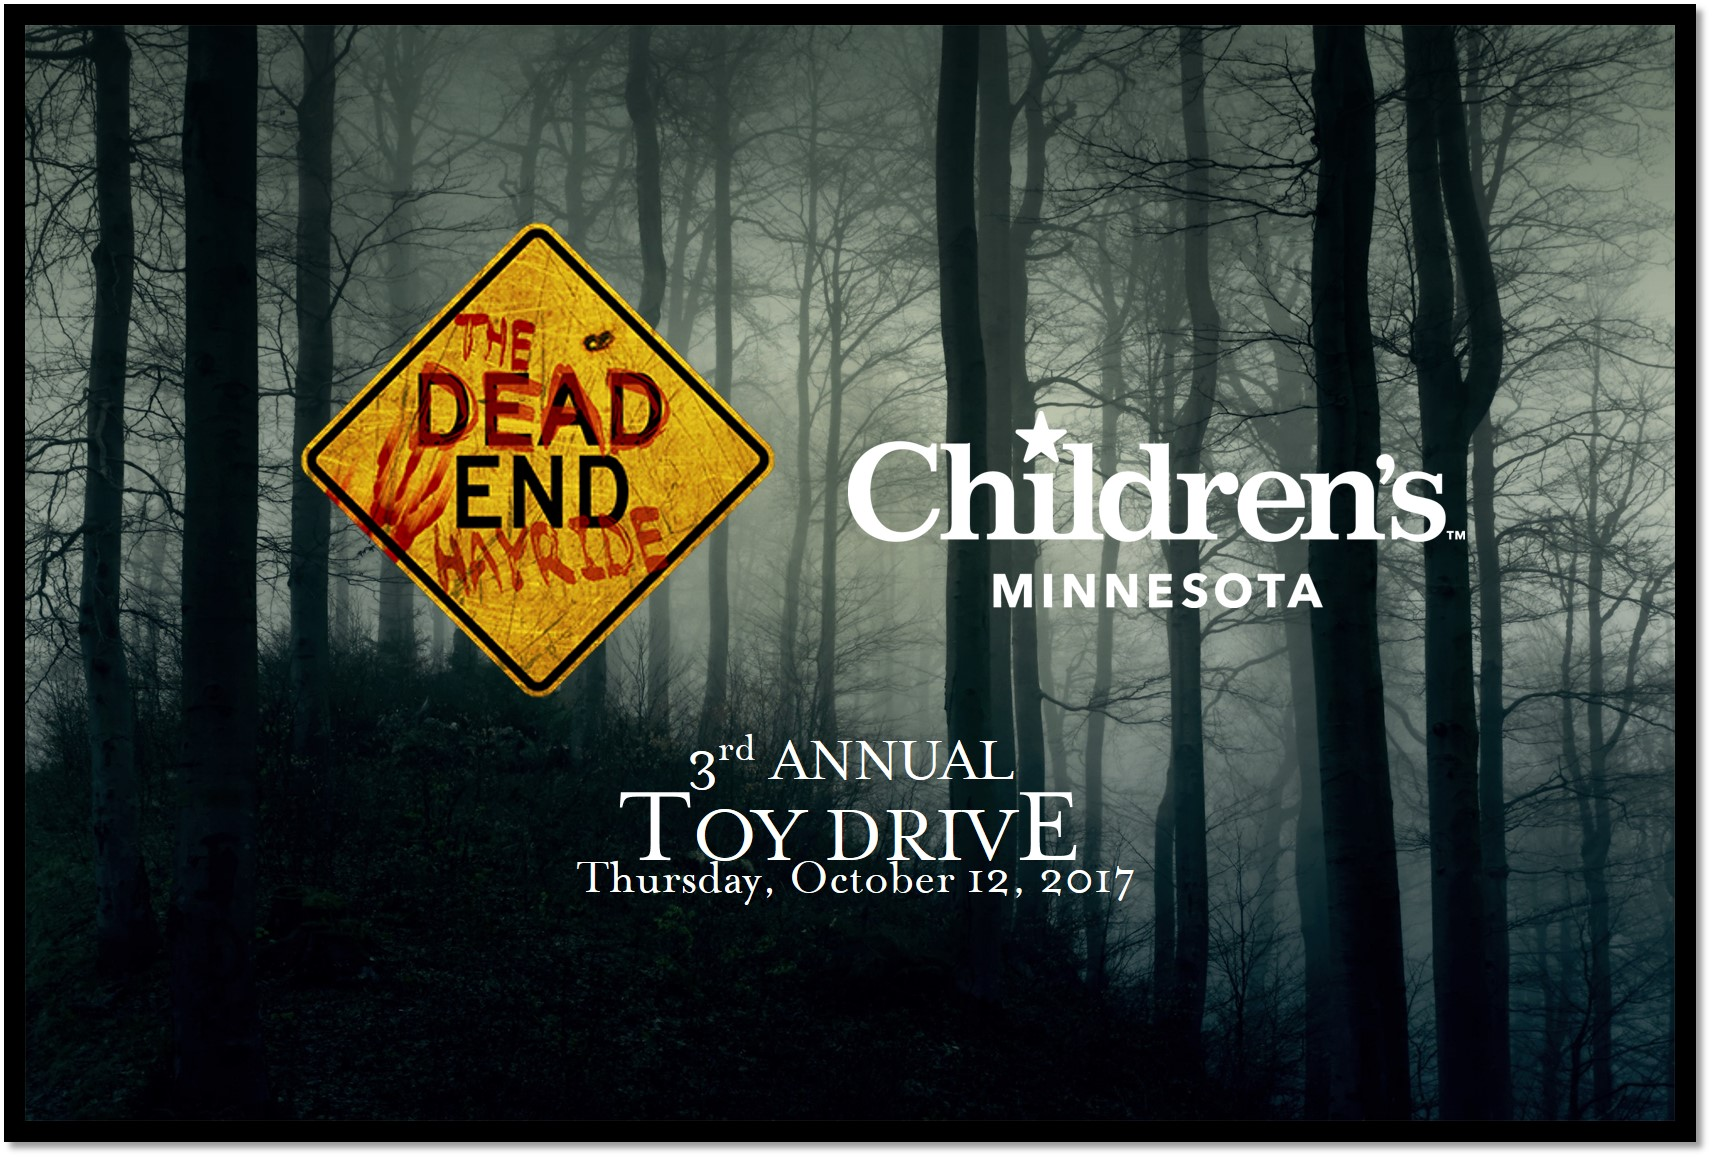 Minnesota S Largest Haunted Attraction Gives Free Tickets In Exchange For Toys Newswire